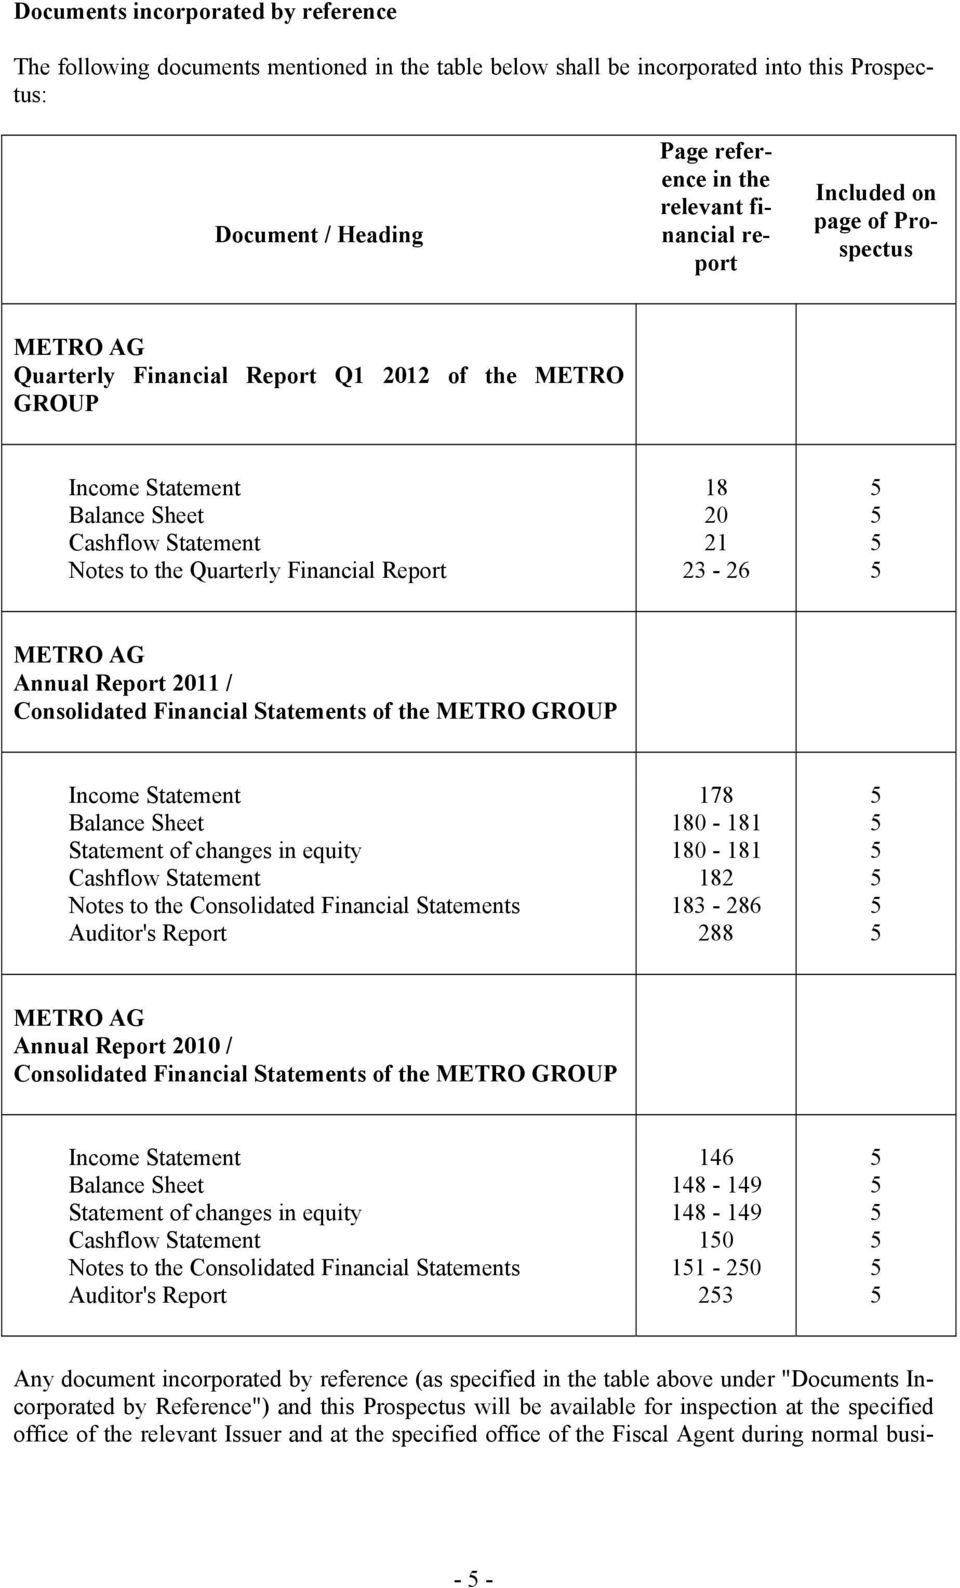 23-26 5 METRO AG Annual Report 2011 / Consolidated Financial Statements of the METRO GROUP Income Statement 178 5 Balance Sheet 180-181 5 Statement of changes in equity 180-181 5 Cashflow Statement